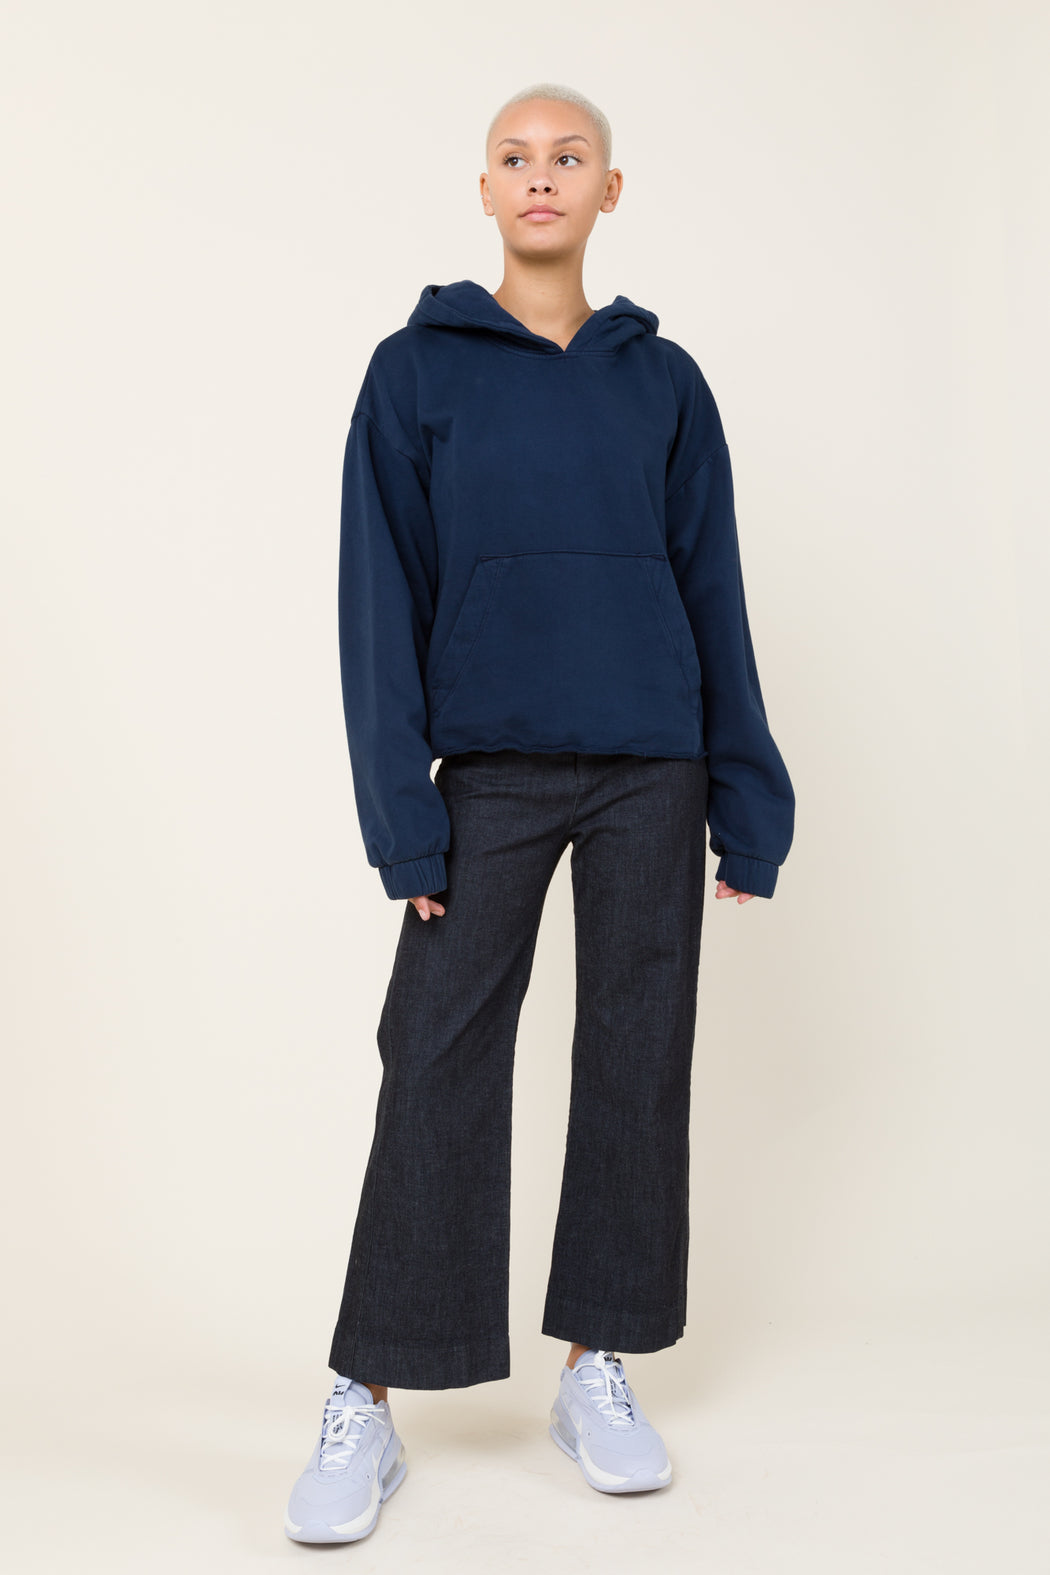 Our Band Together hoodie in Midnight is an oversized pullover hoodie with deconstructed hem and elasticated cuffs. Evocative of the 70's era home sewing, the smaller hood and oversized fit update this style.